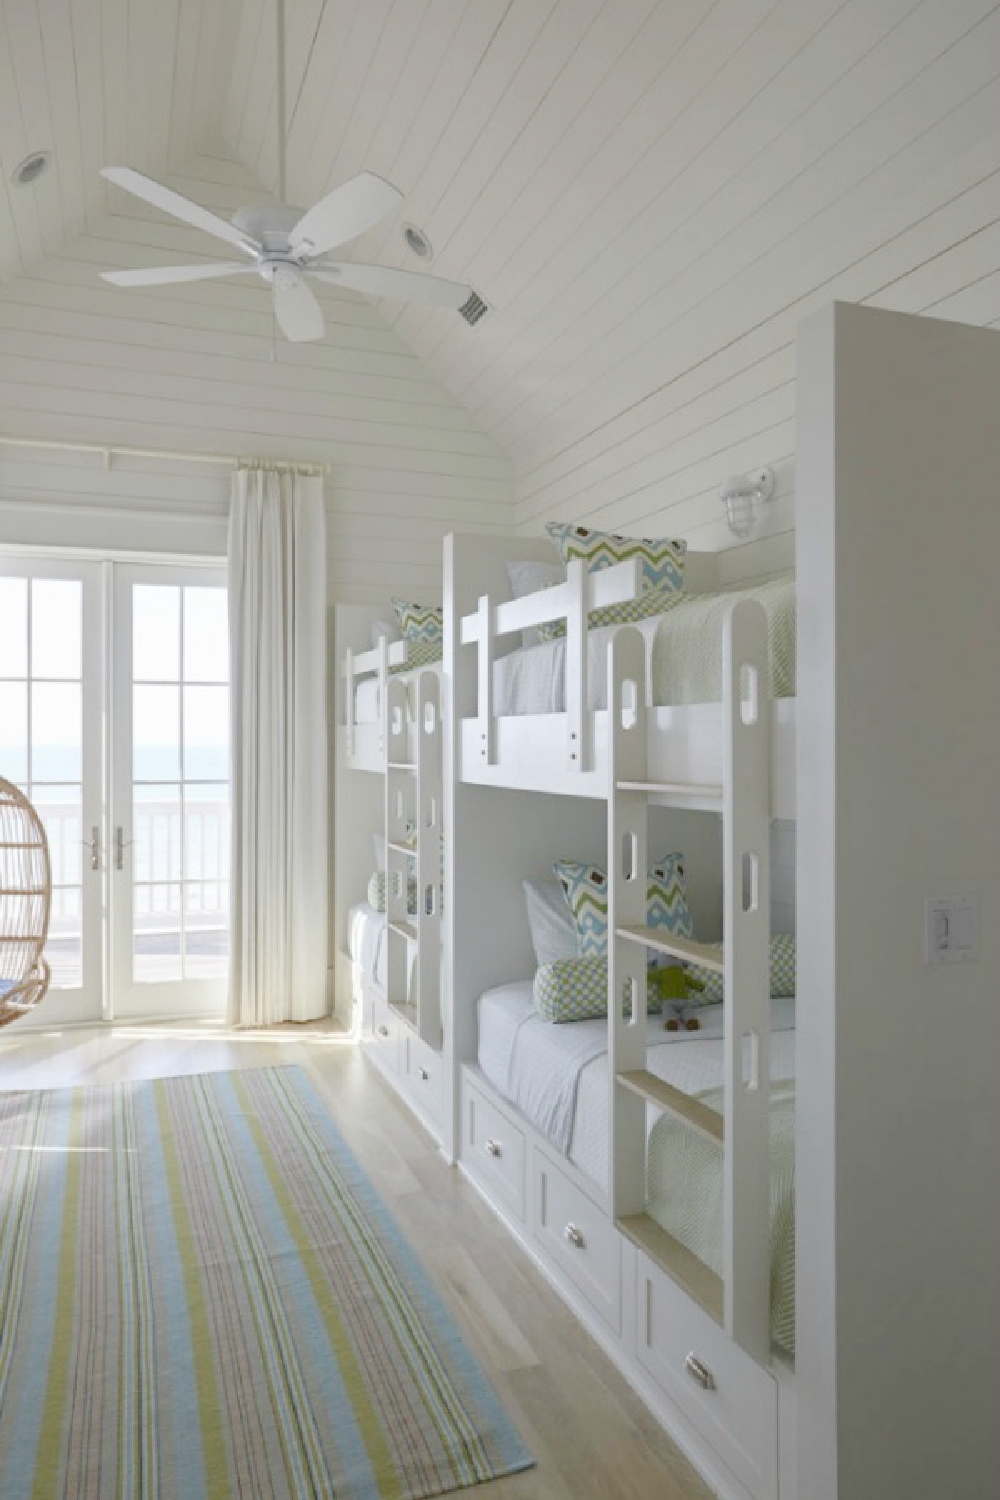 Bunk room with coastal style, built-ins, and shiplap walls and ceilings - Geoff Chick. #bunkrooms #coastalstyle #builtinbunks